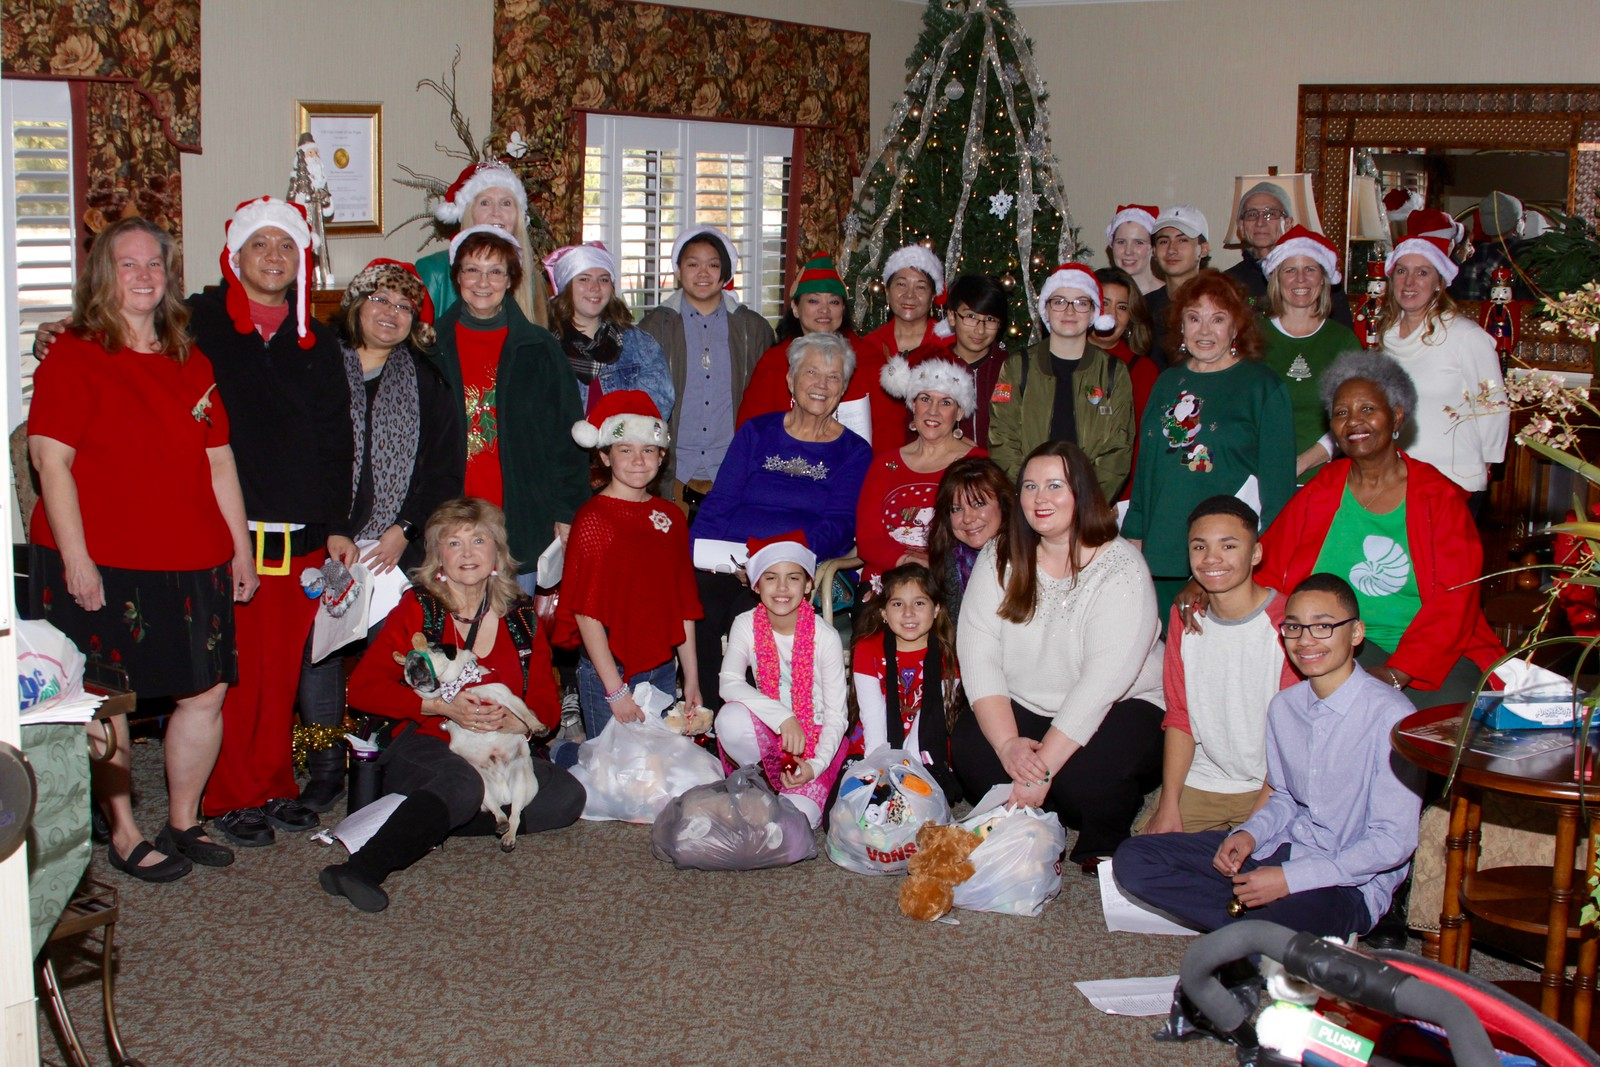 After Christmas Caroling at Senior Assisted Living facilities